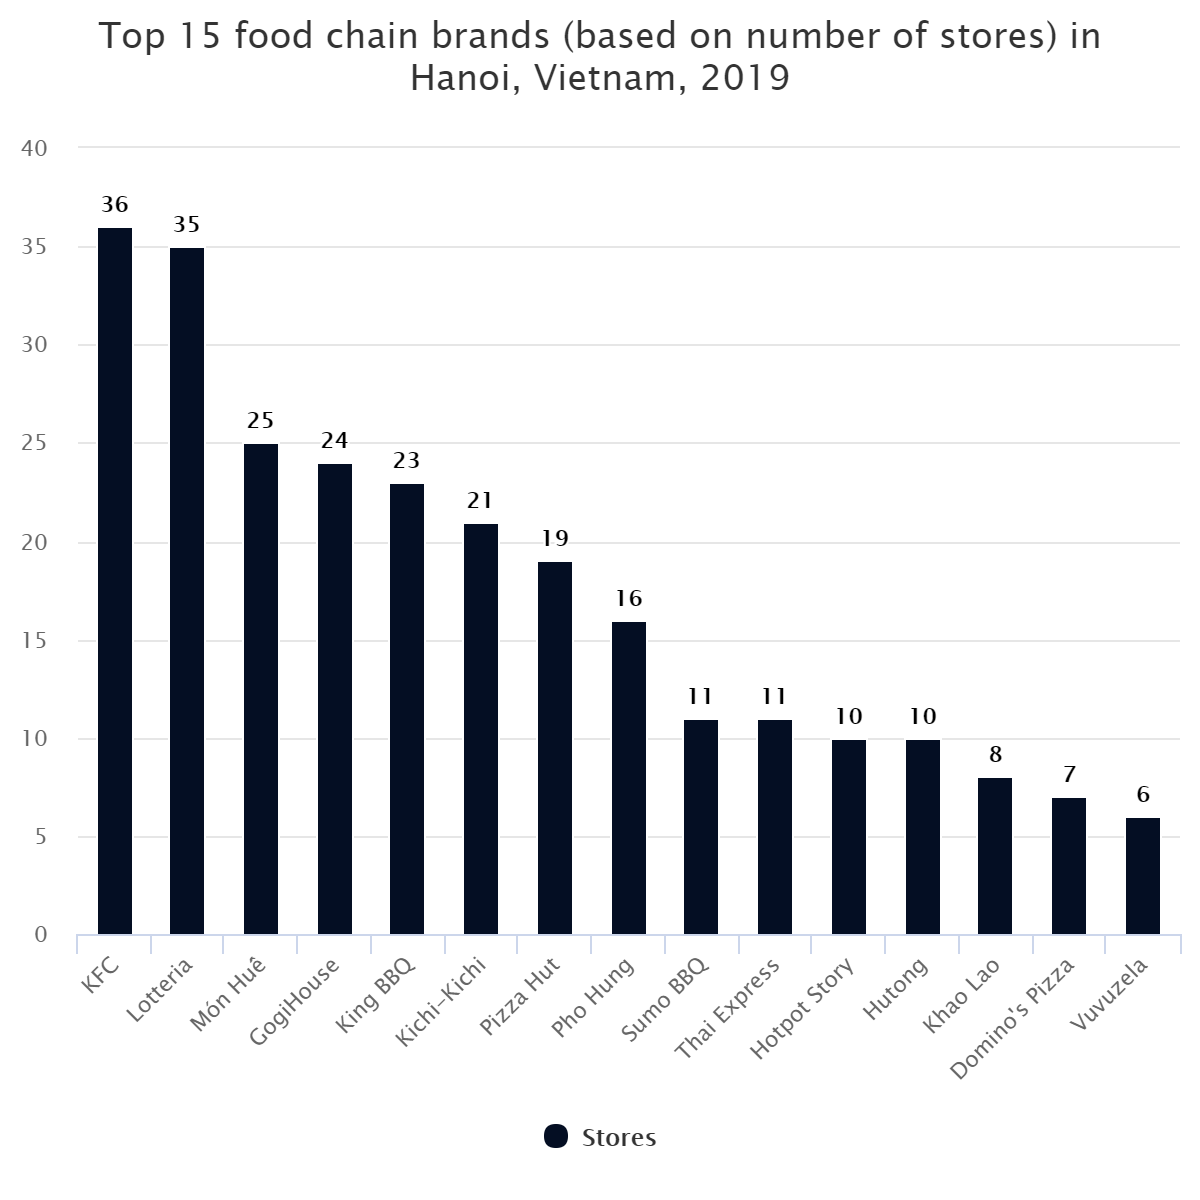 Top 15 food chain brands (based on number of stores) in Hanoi, Vietnam, 2019